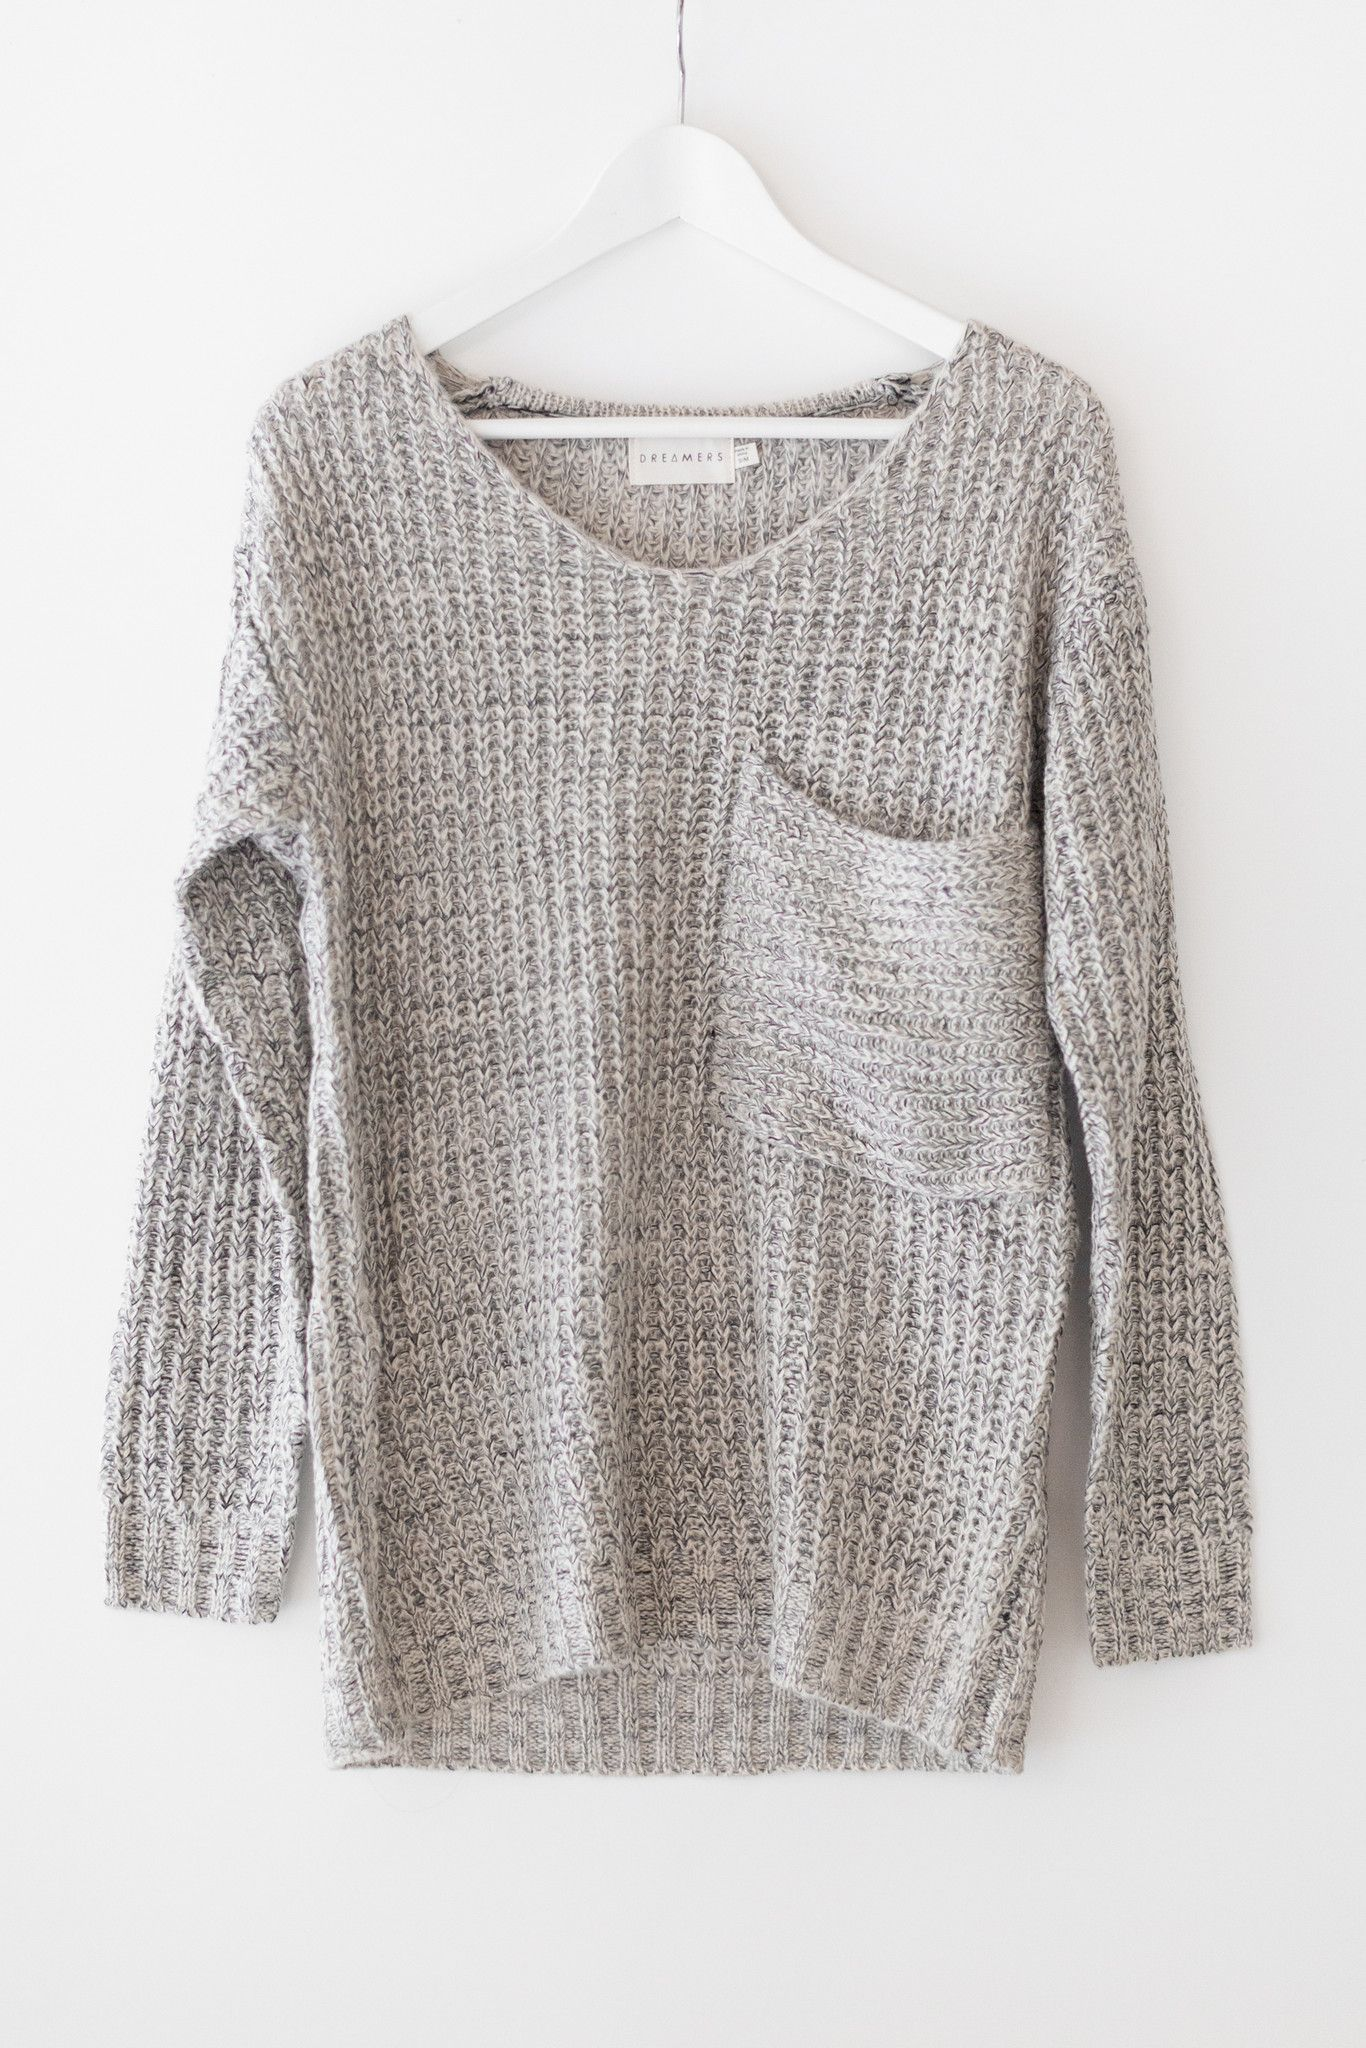 Multi colored knitted sweater with an oversized fit and a large ...